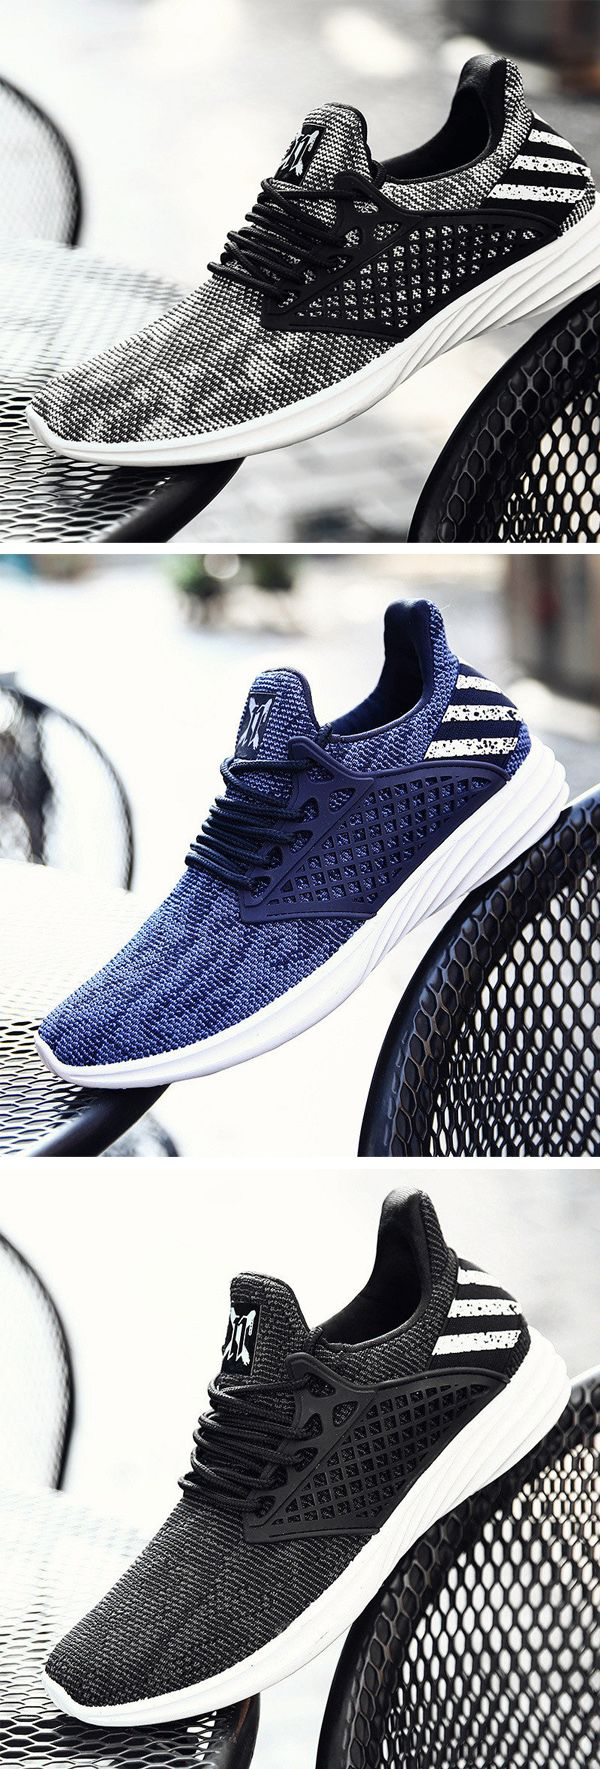 US$28.15 Men Knitted Fabric Breathable Lace Up Light Running Sneakers#shoes #sty…